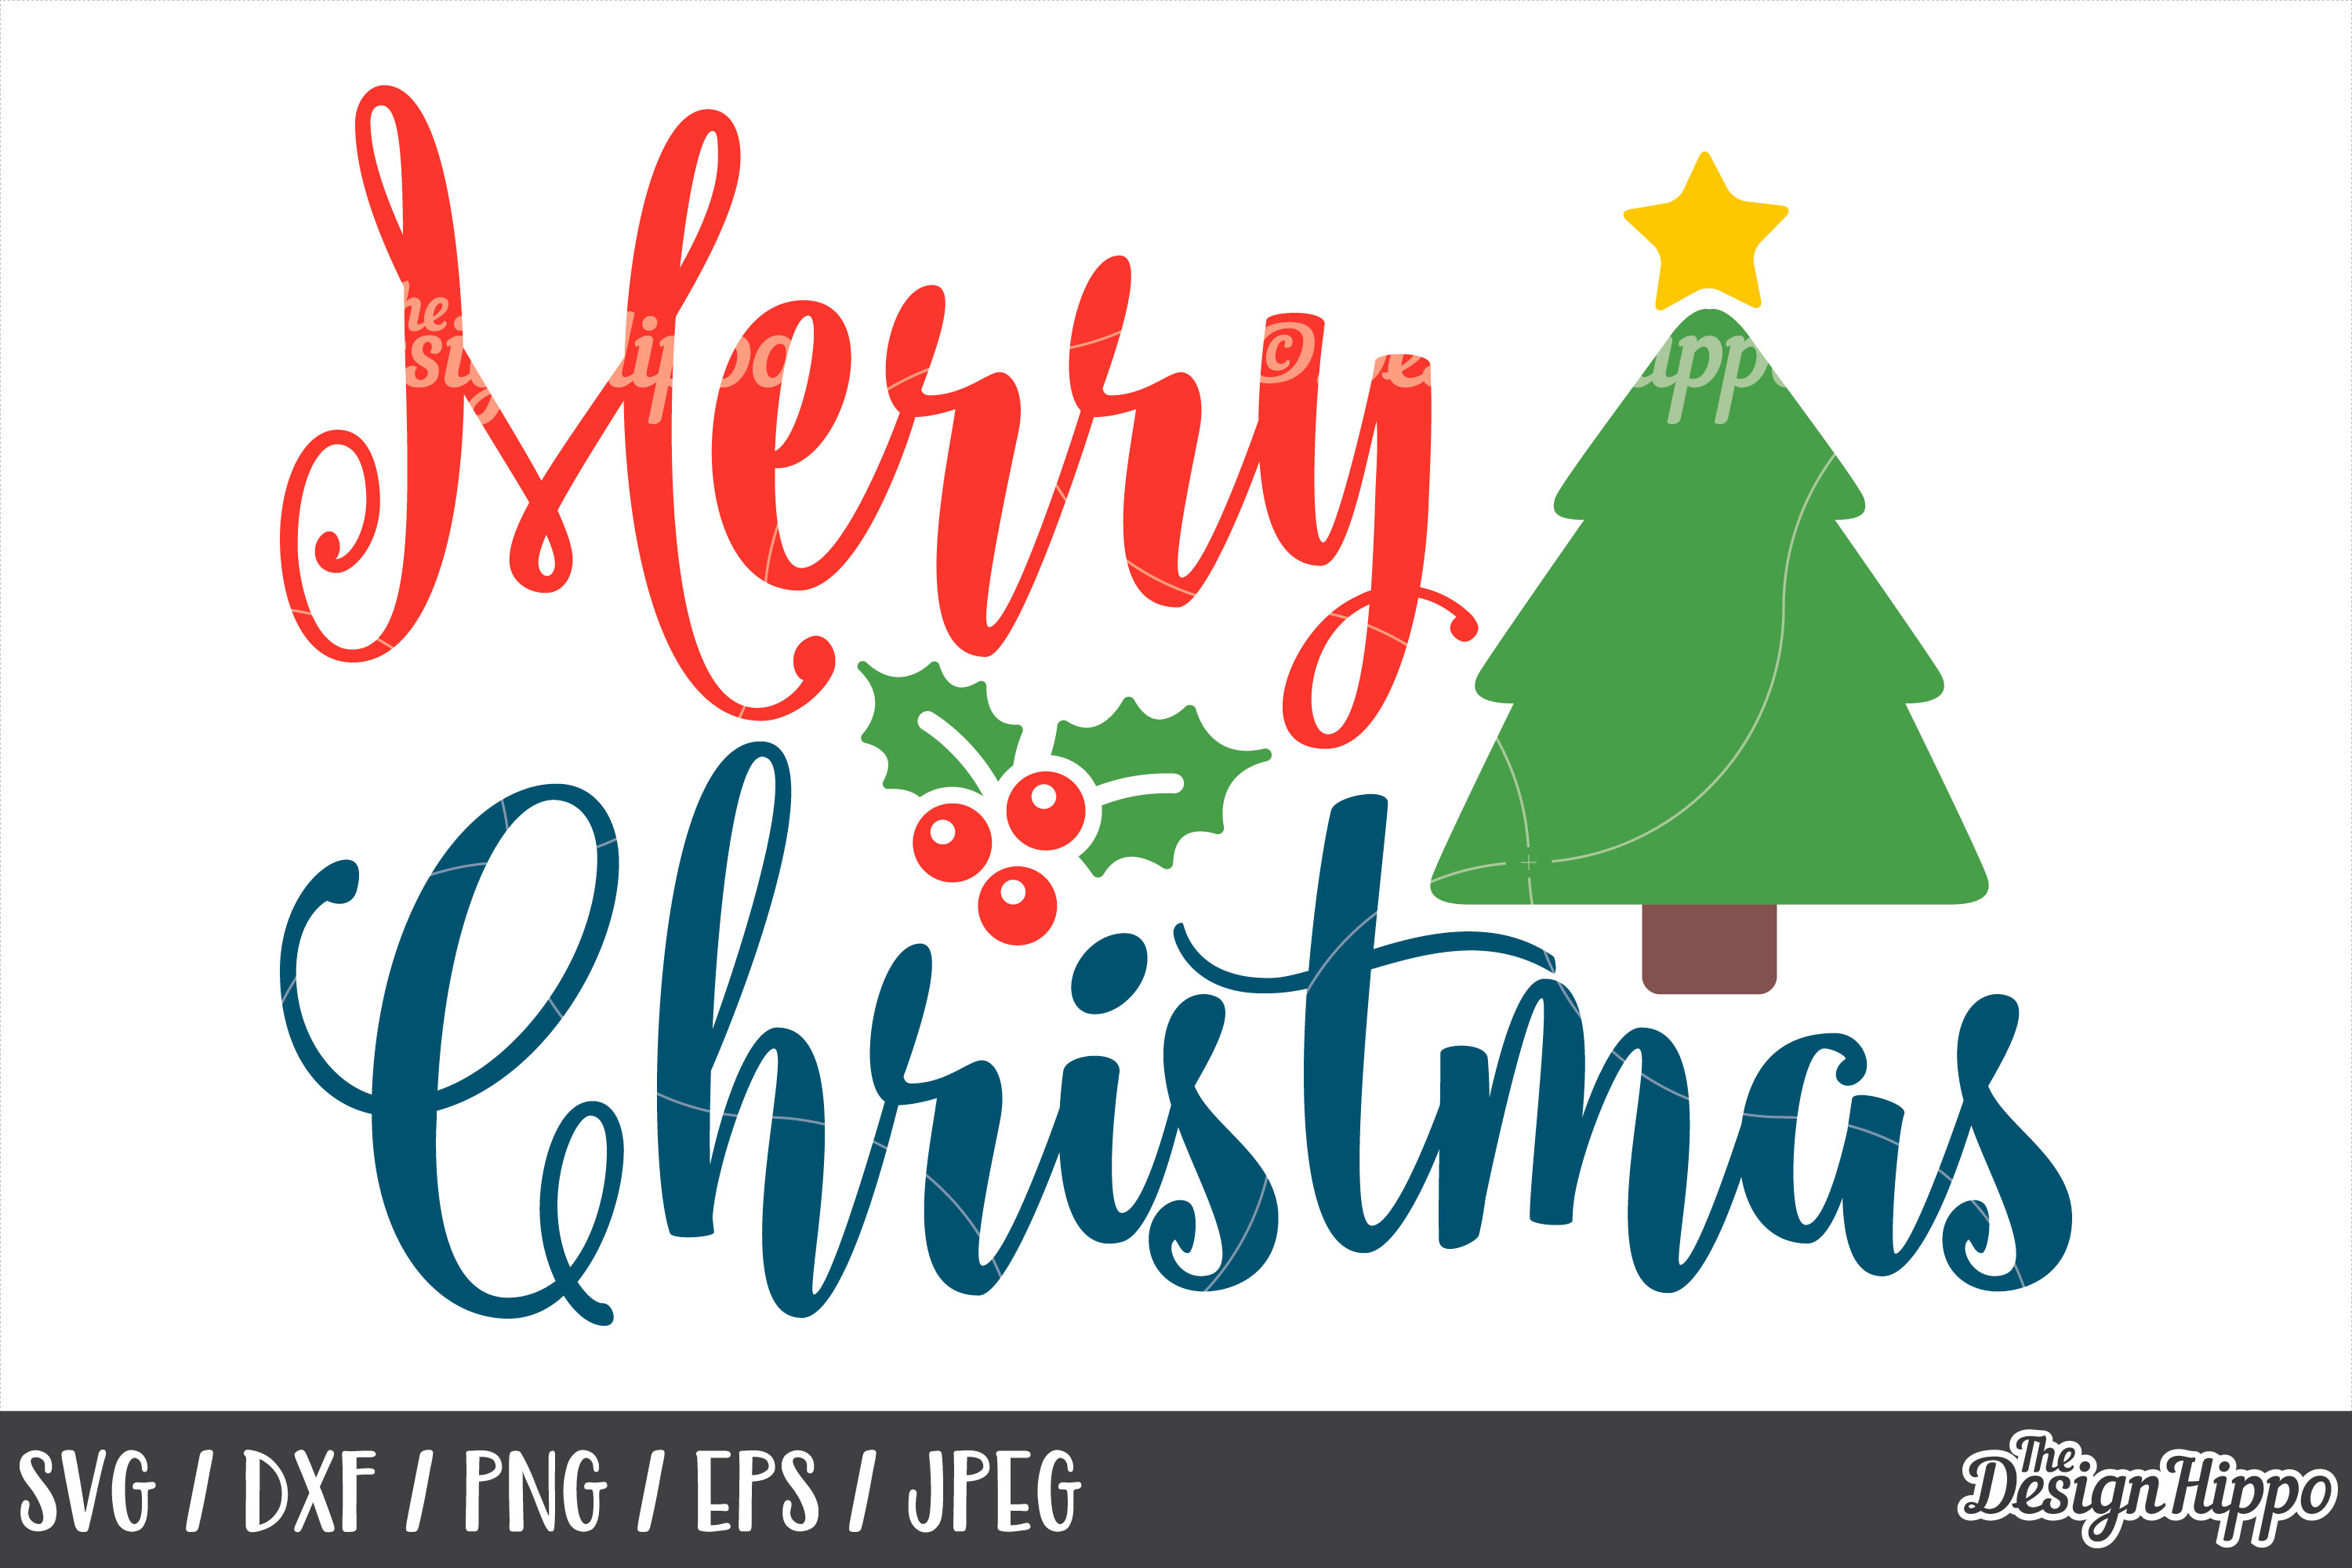 Download Christmas Tree, Merry Christmas SVG, DXF, PNG, Cricut, Files